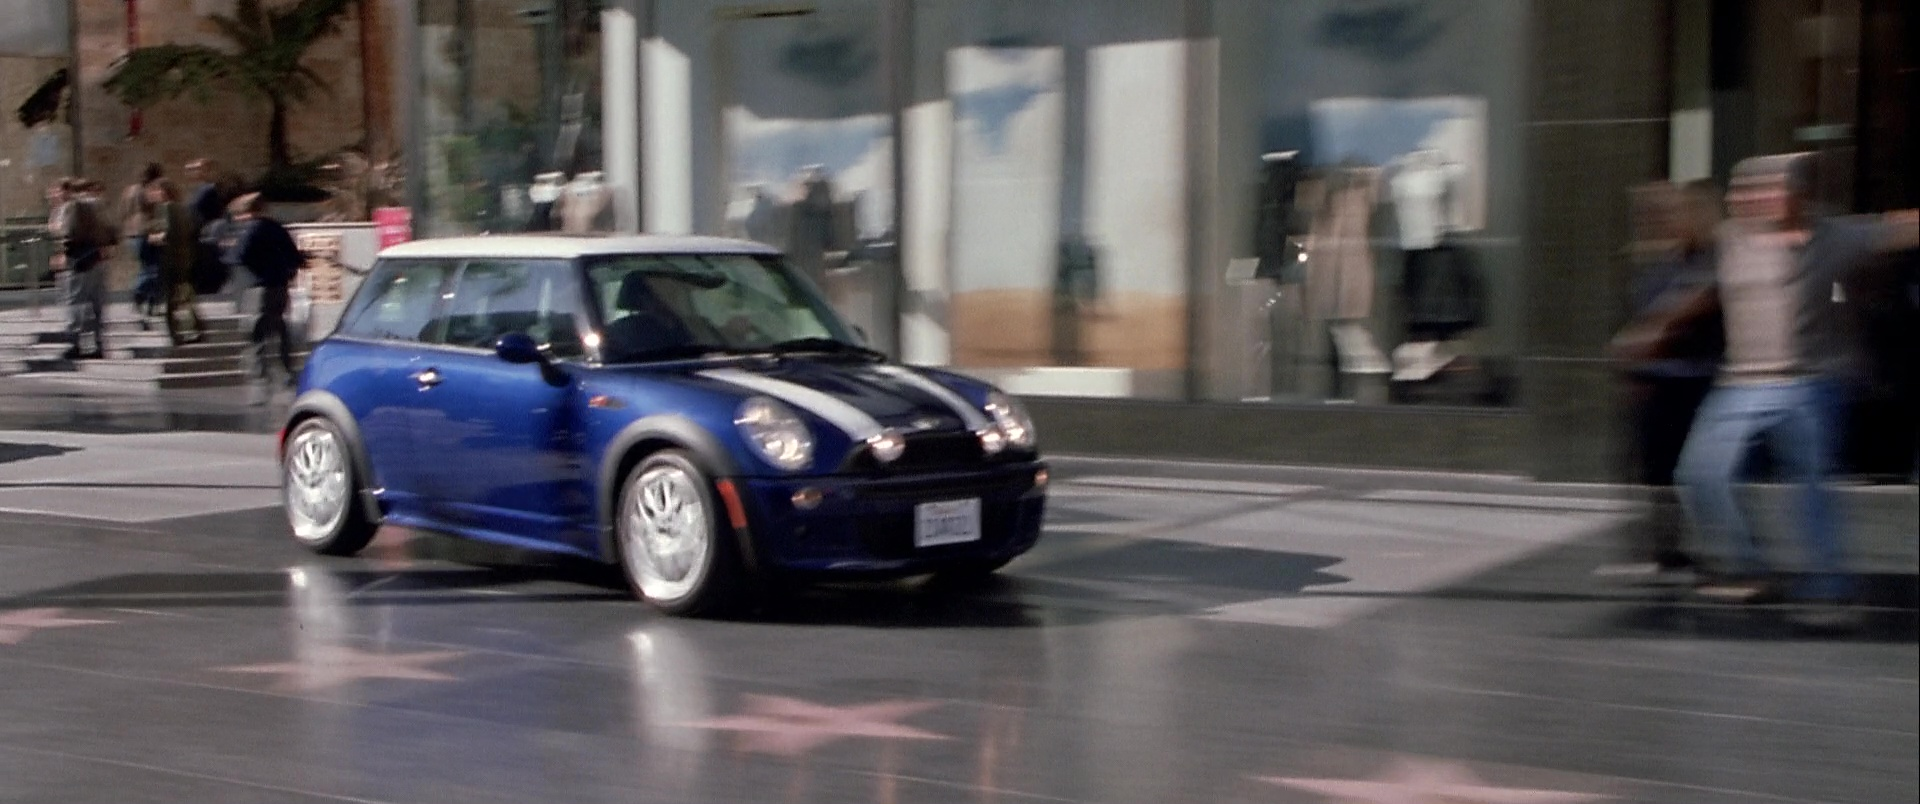 Mini Cooper S Blue Car Used By Mark Wahlberg In The